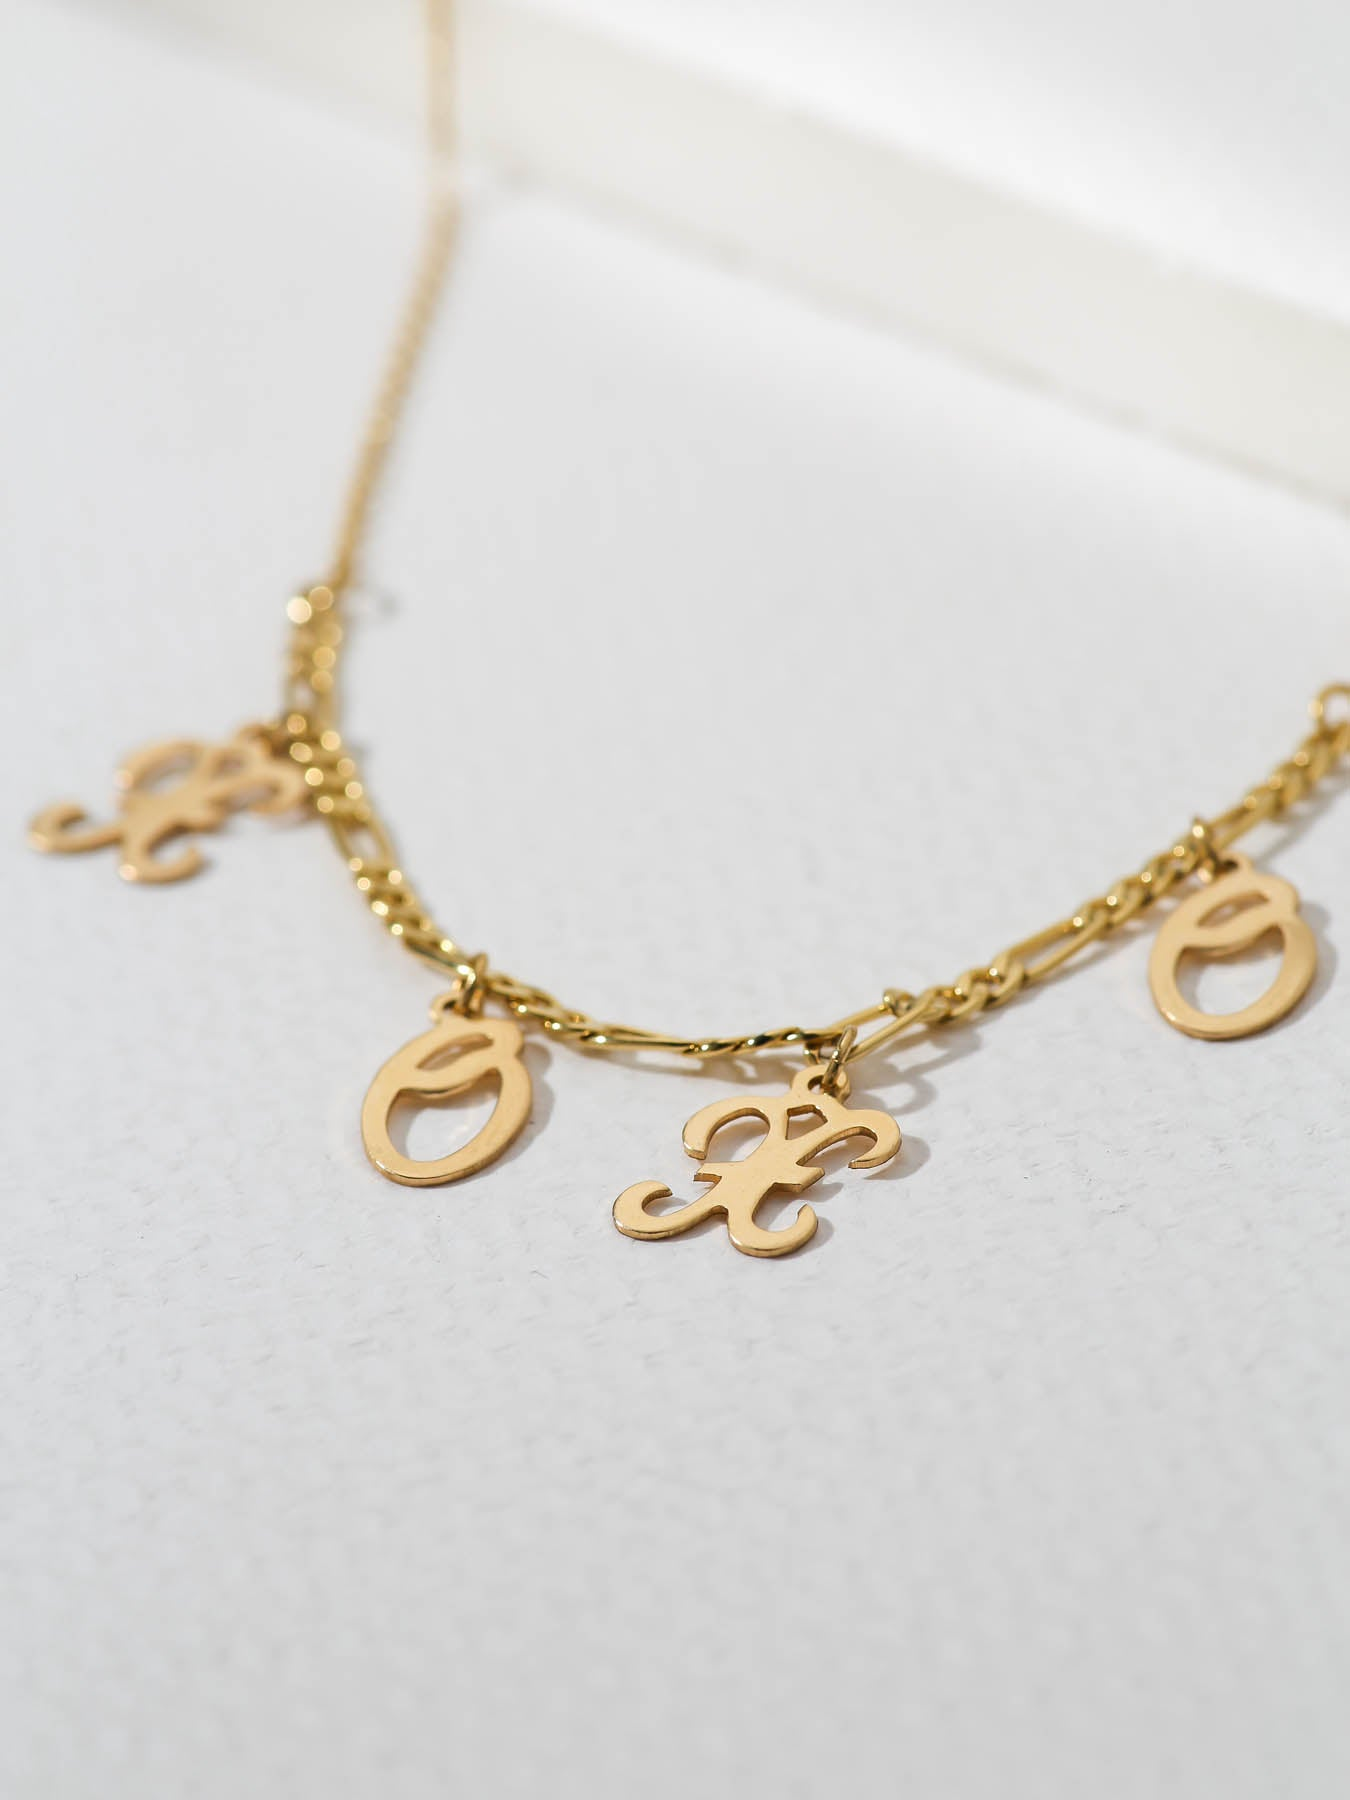 The XOXO Charm Necklace